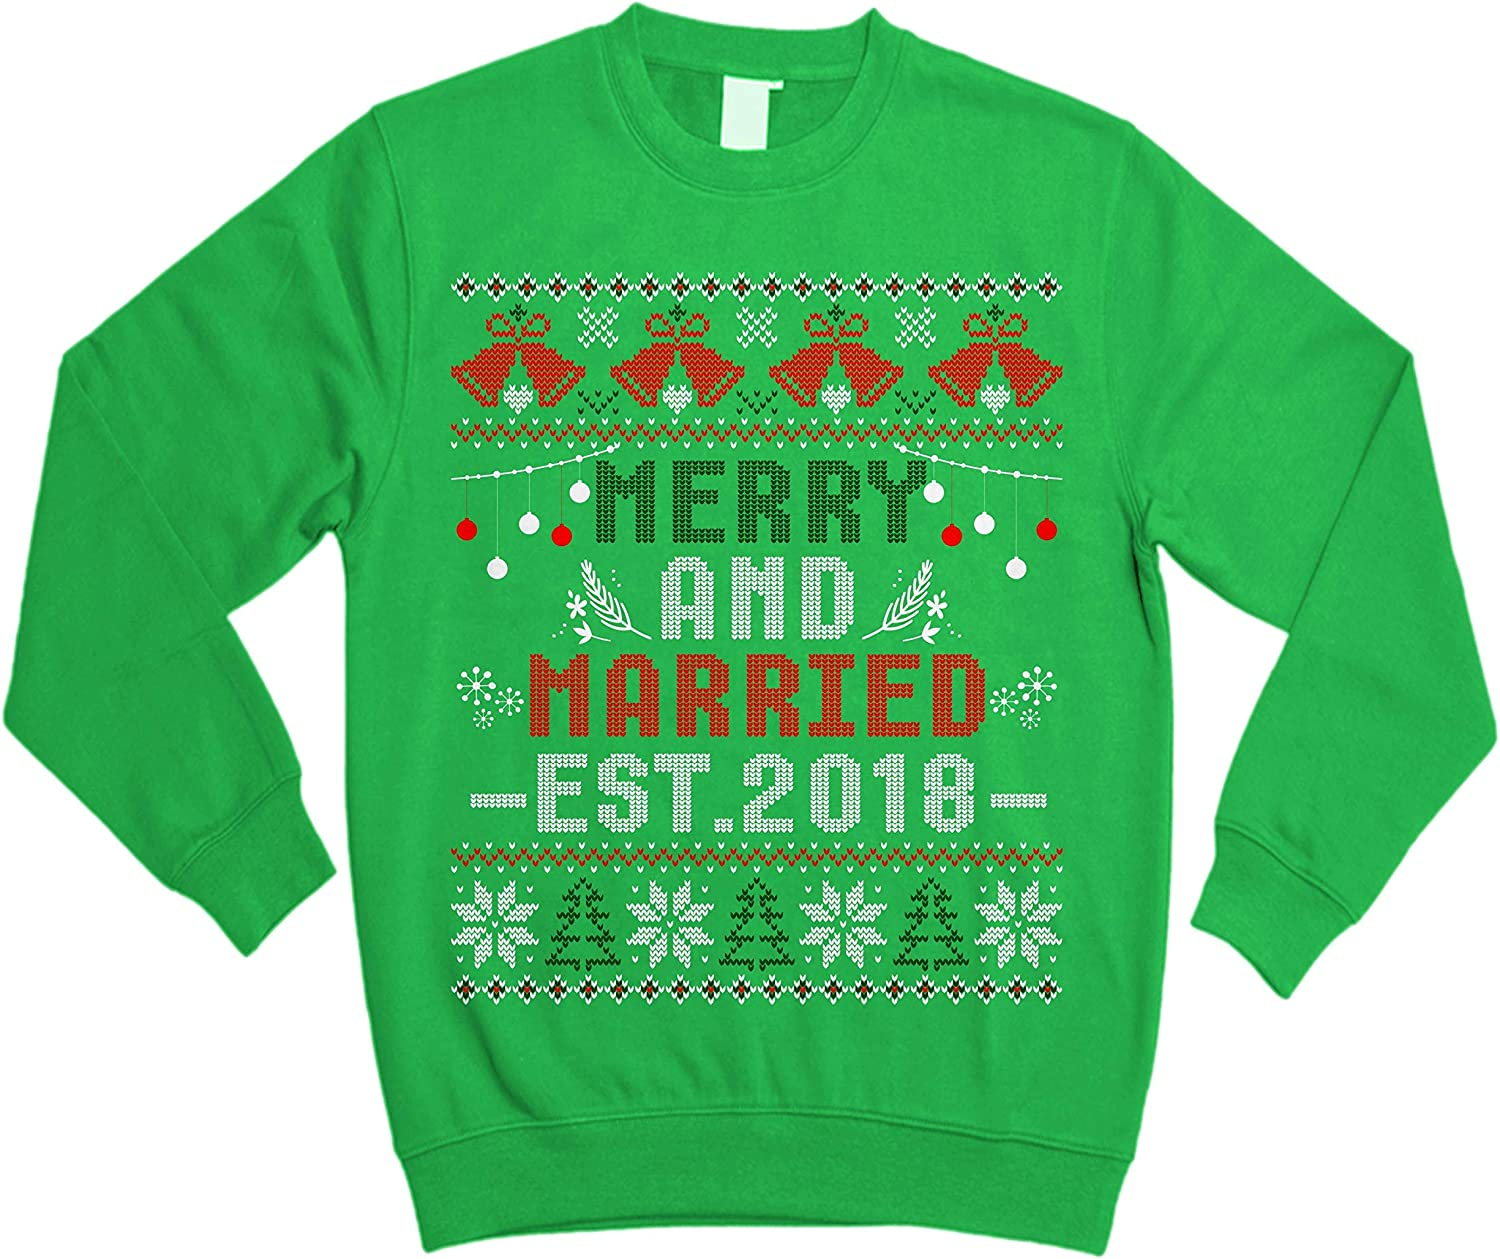 Merry and Married for Mr and Mrs Christmas Ugly Sweater Shirt Noel Merry Xmas Sweatshirt